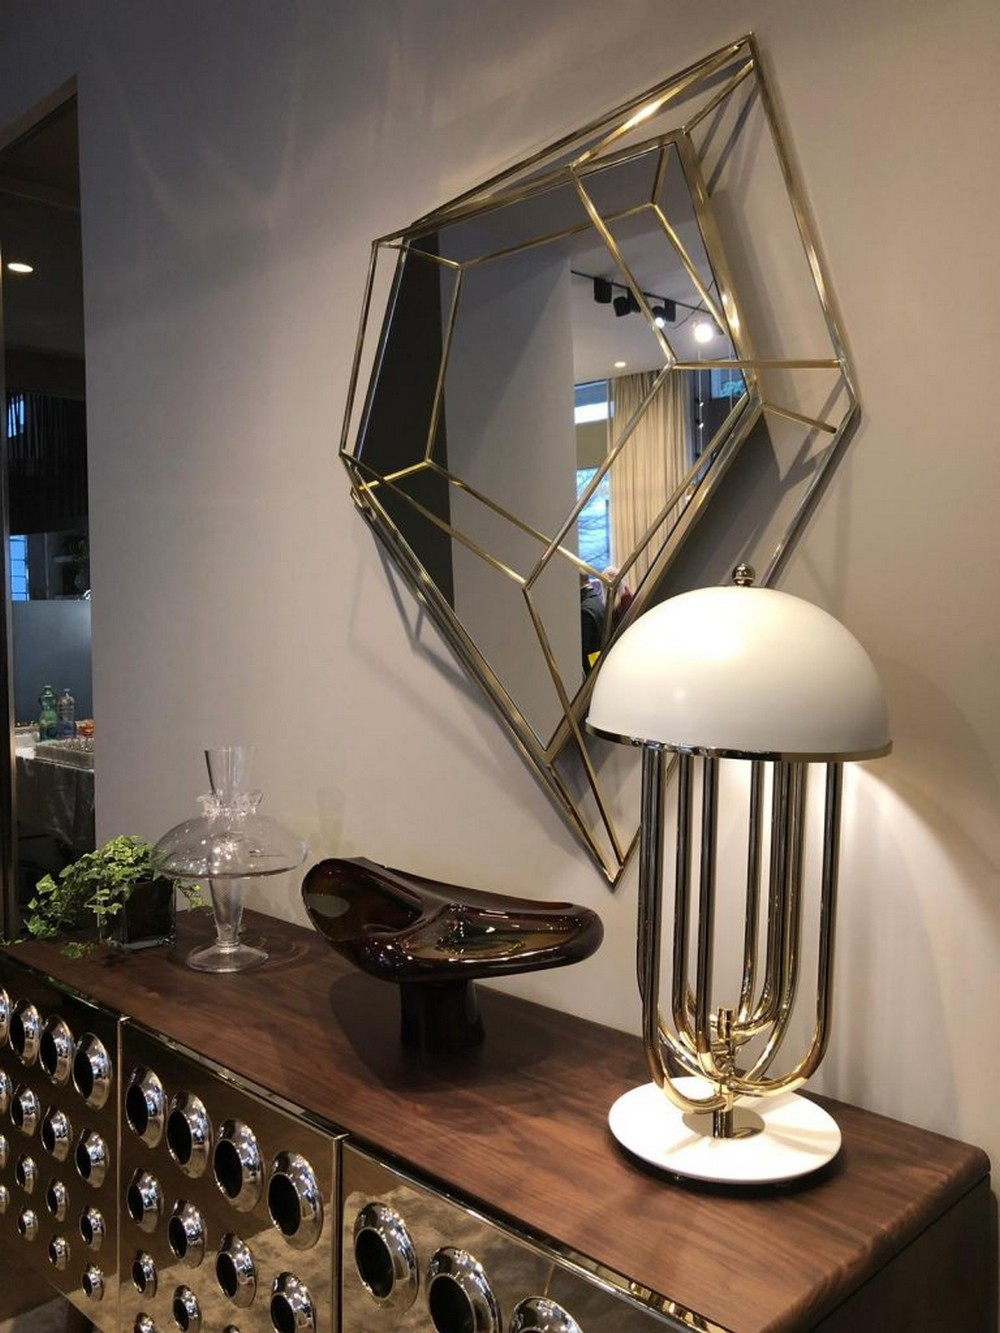 bredaquaranta Have a look at some of the latest styles and trends of Bredaquaranta Bredaquaranta showroom5